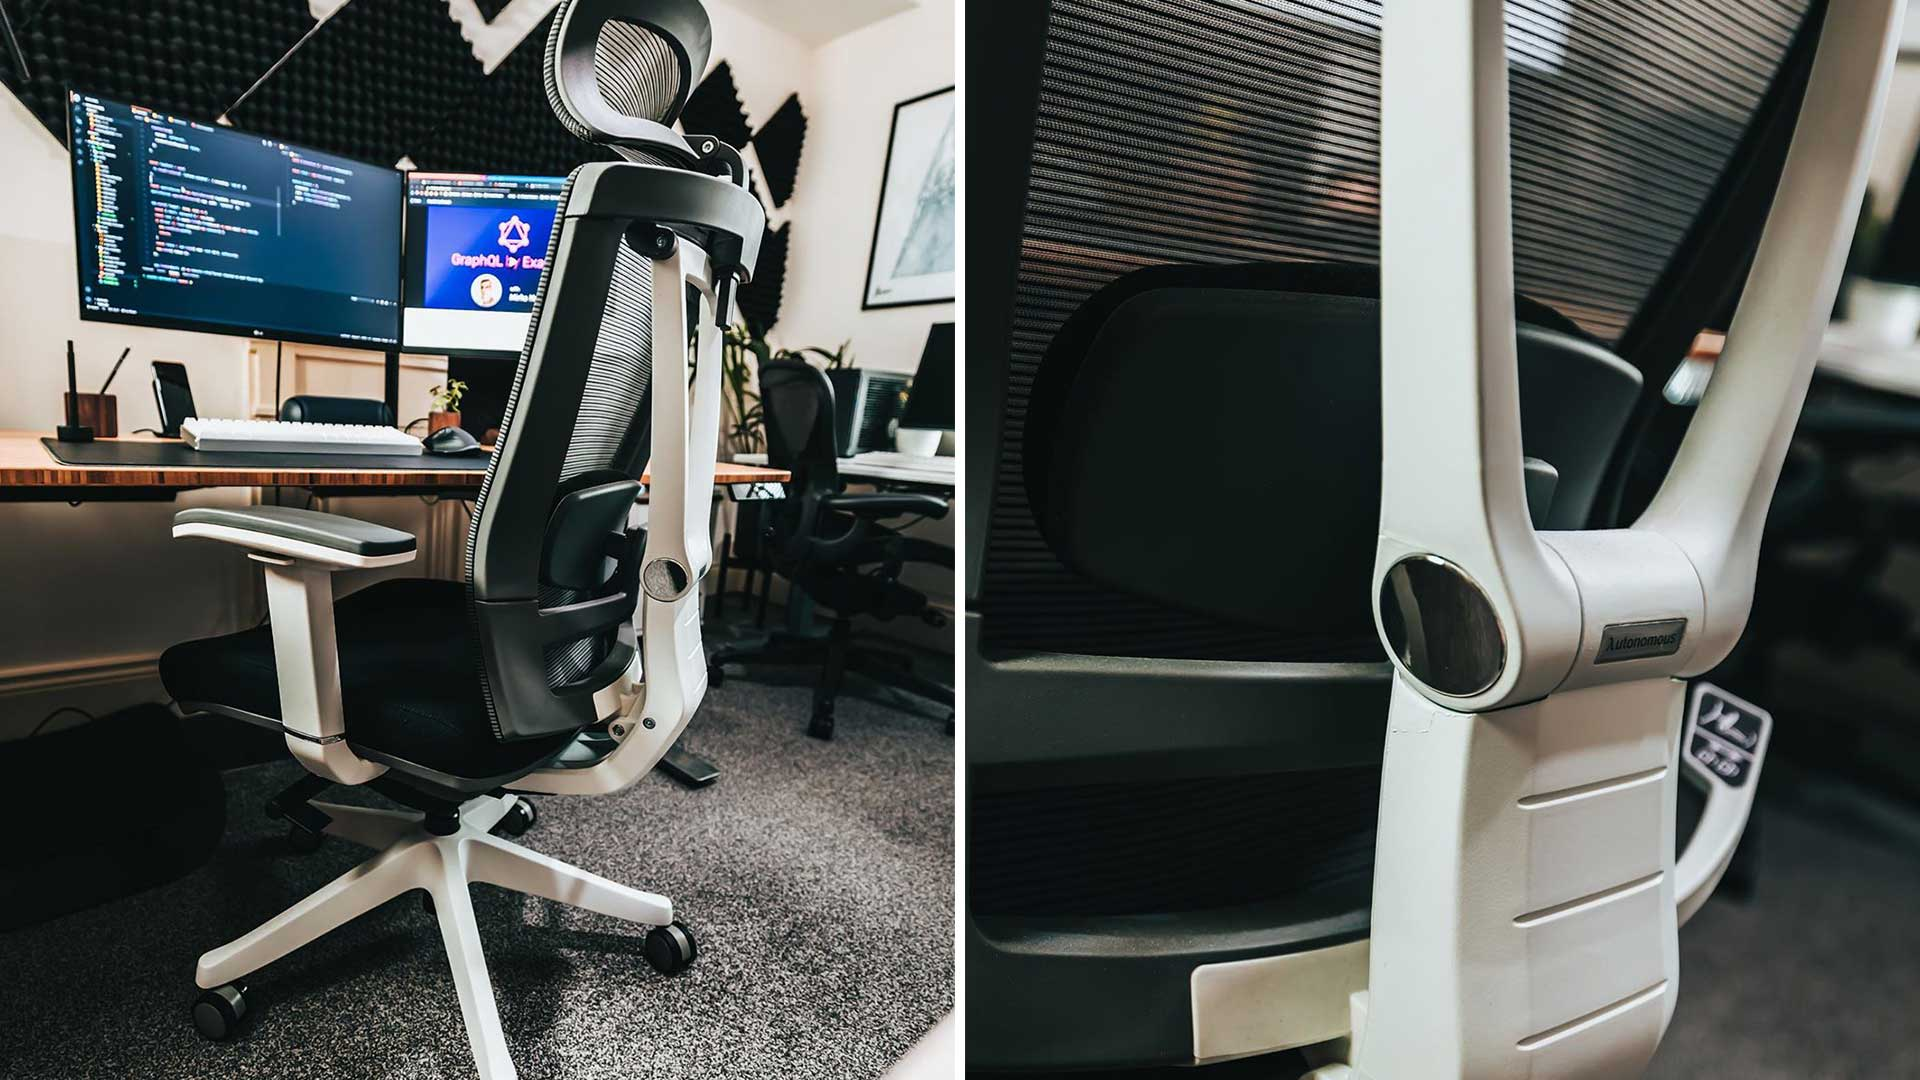 image relates to ergo chair